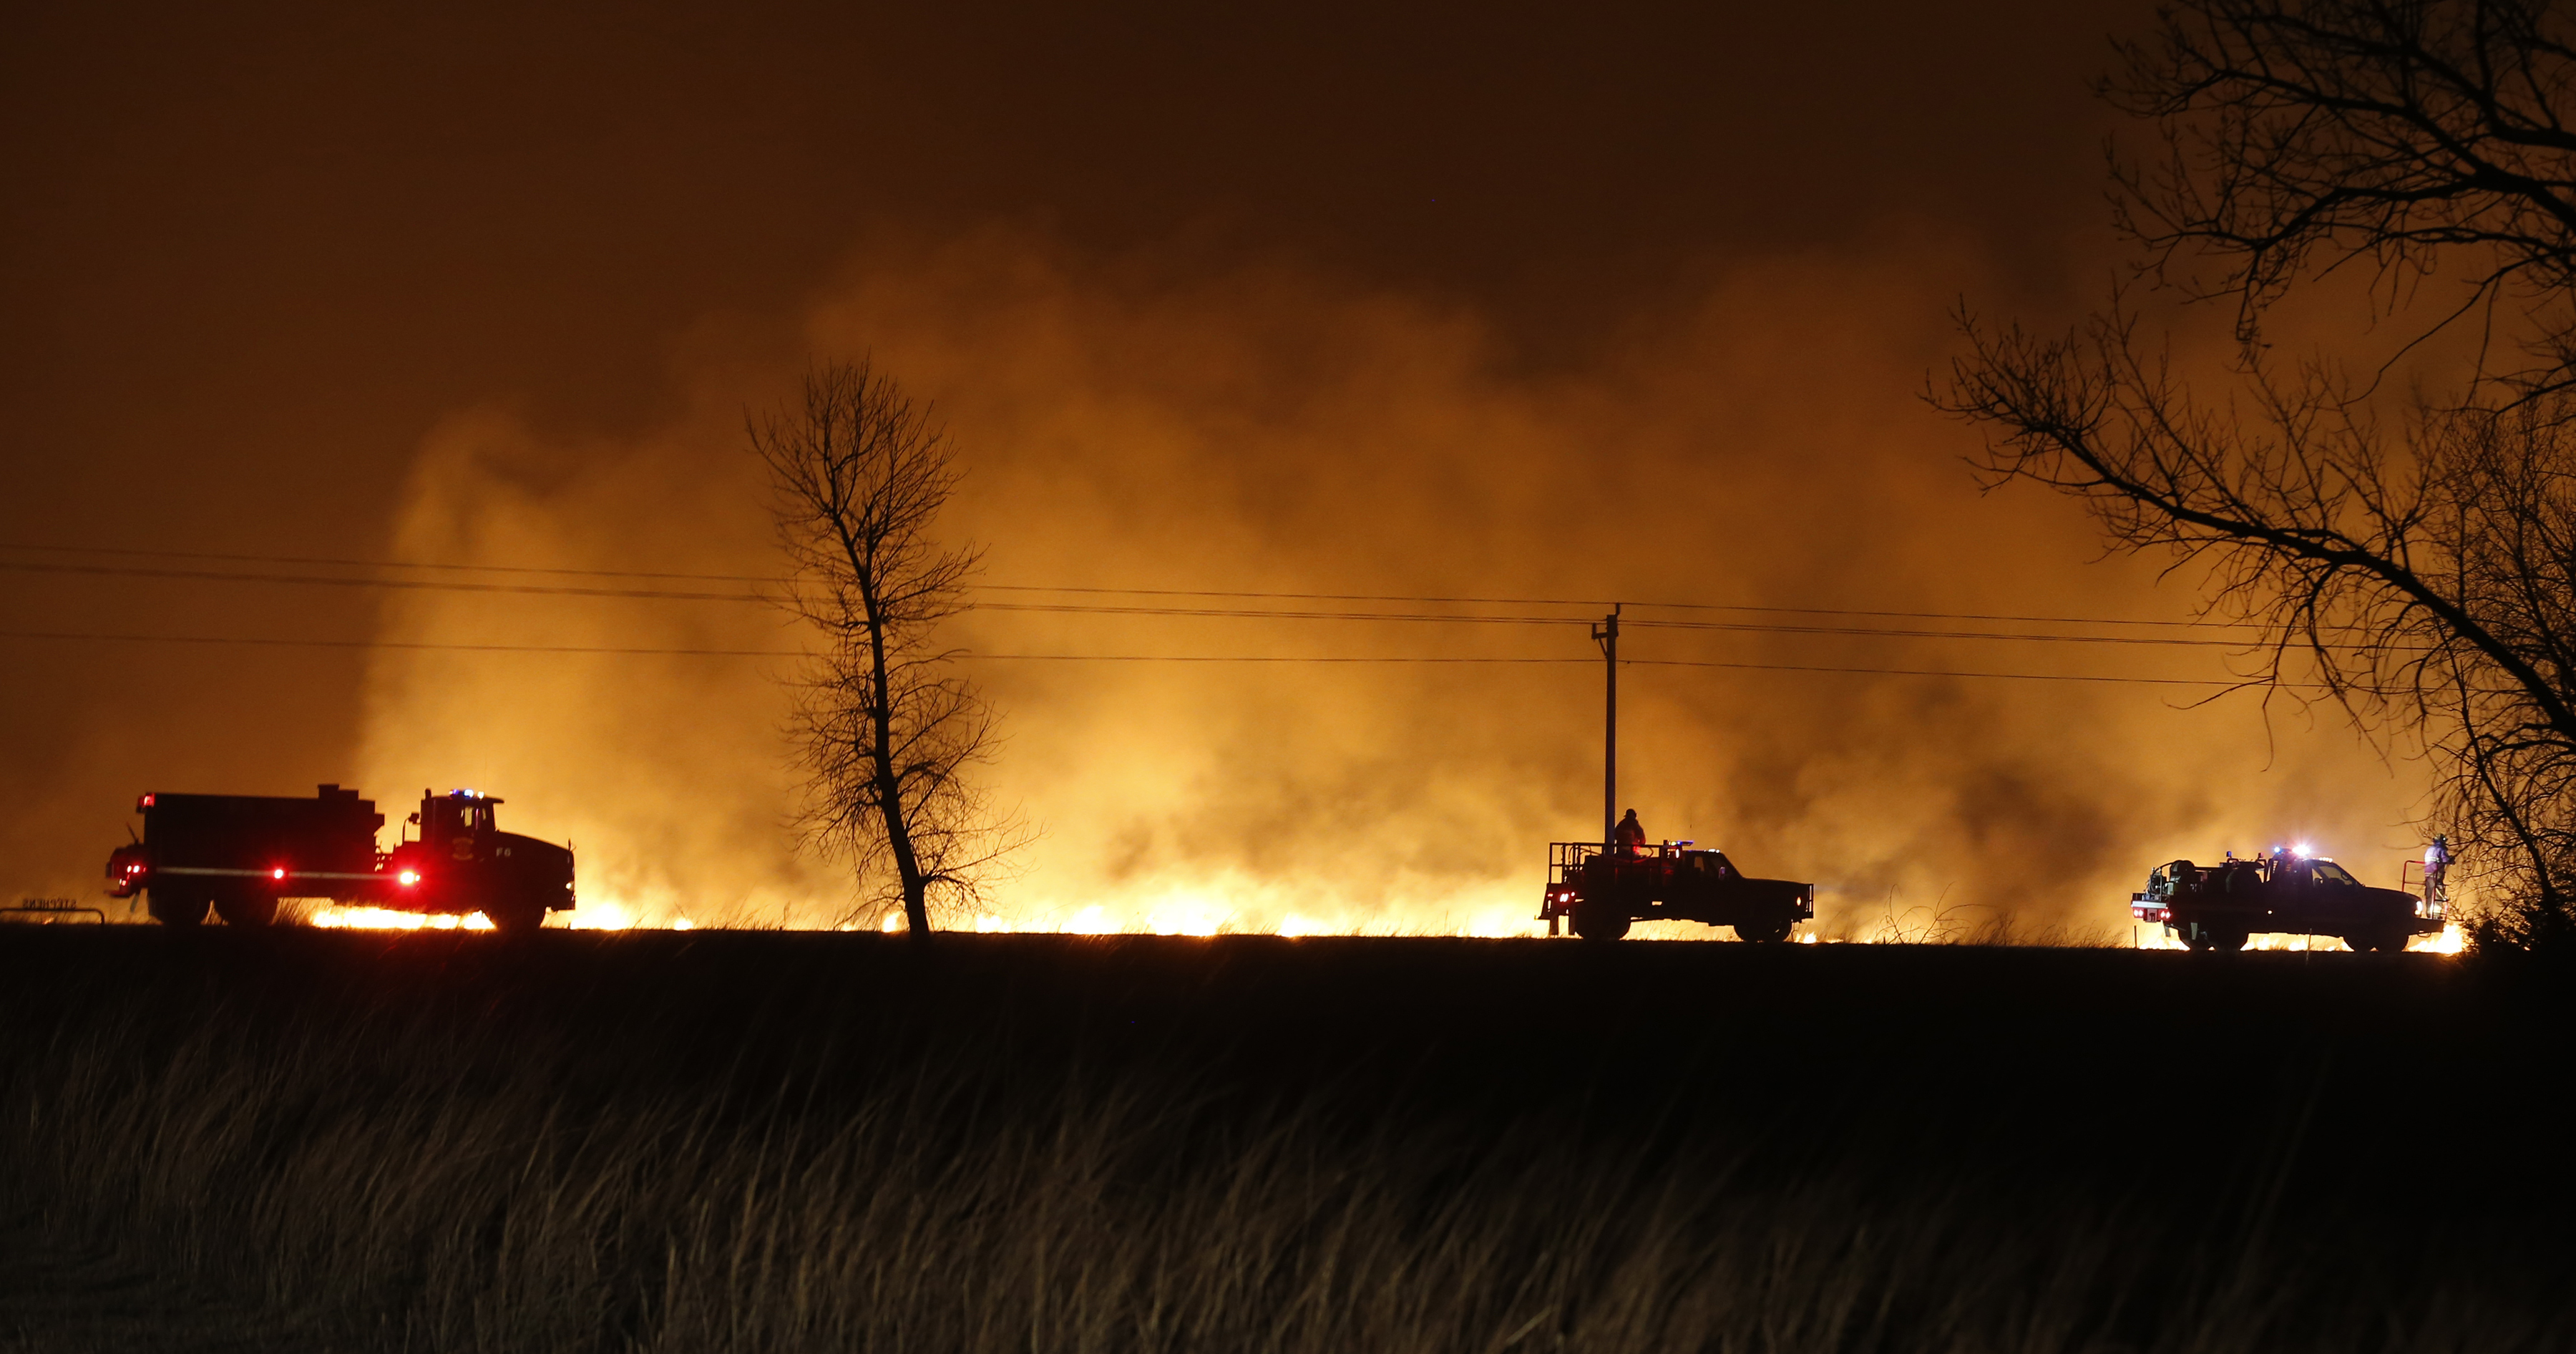 Wildfires on the Rise in Oklahoma